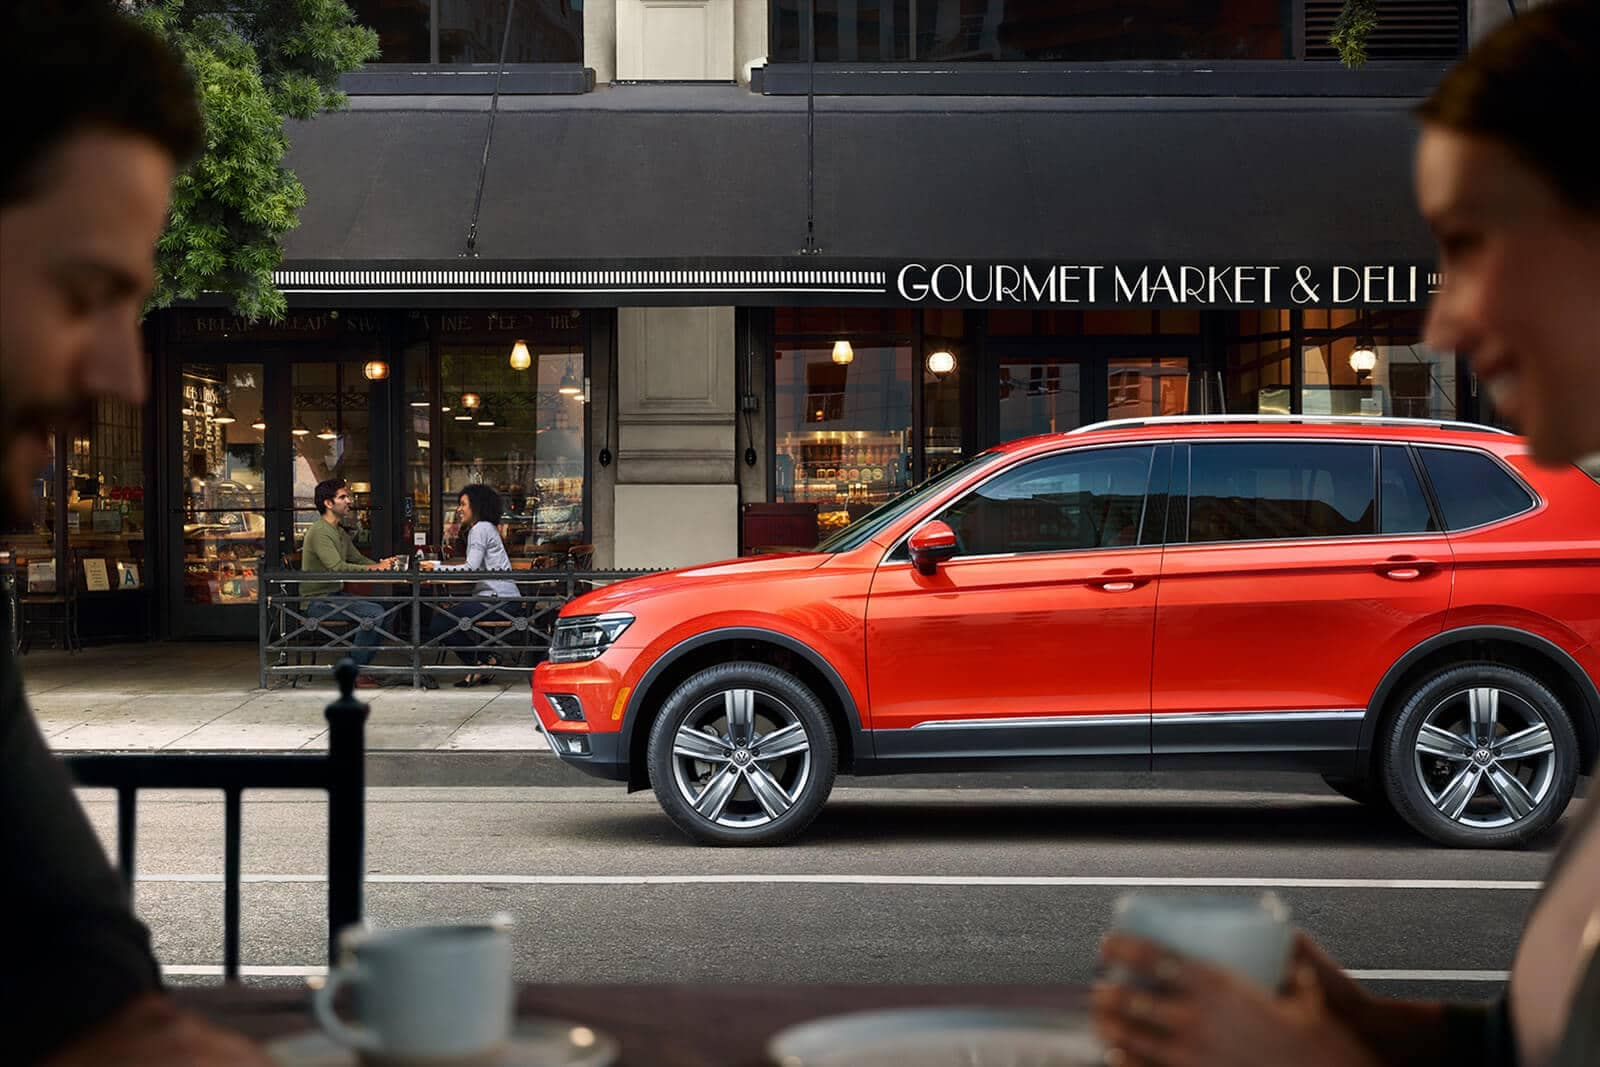 2019 Volkswagen Tiguan in front of shop